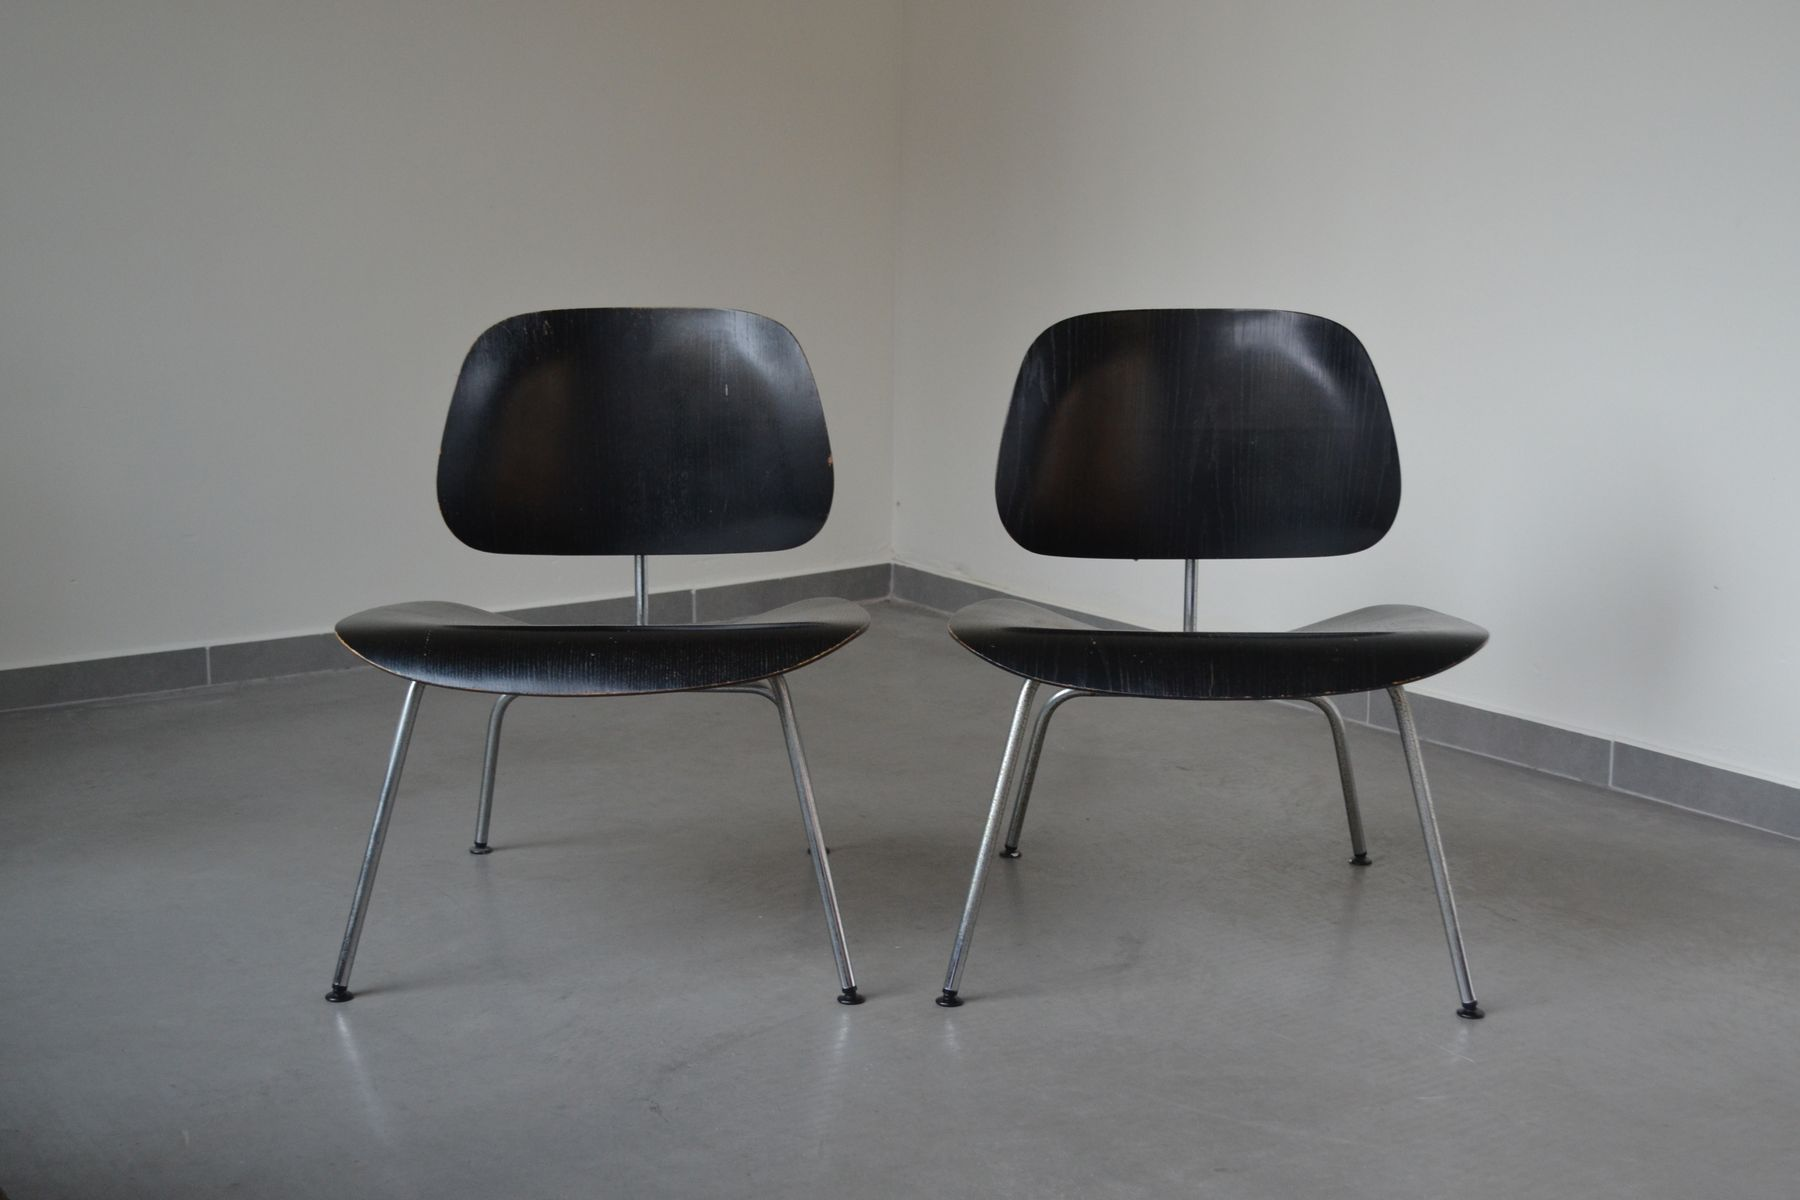 lounge chair metal lcm by charles ray eames for herman. Black Bedroom Furniture Sets. Home Design Ideas